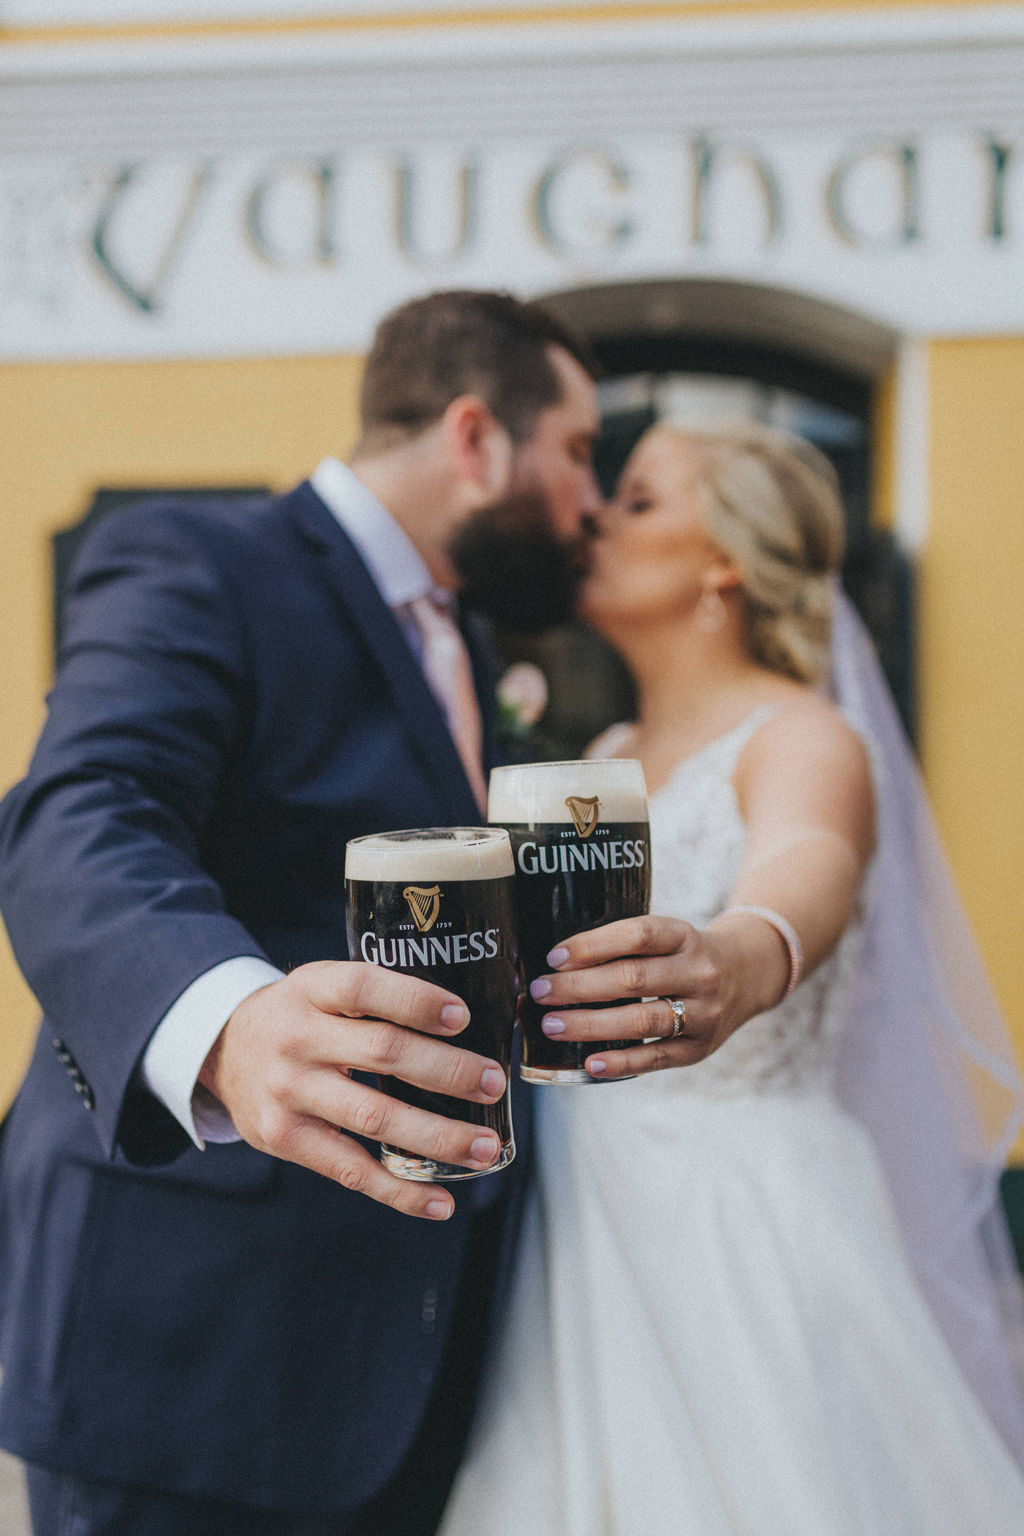 Couple kissing while holding pints of Guinness